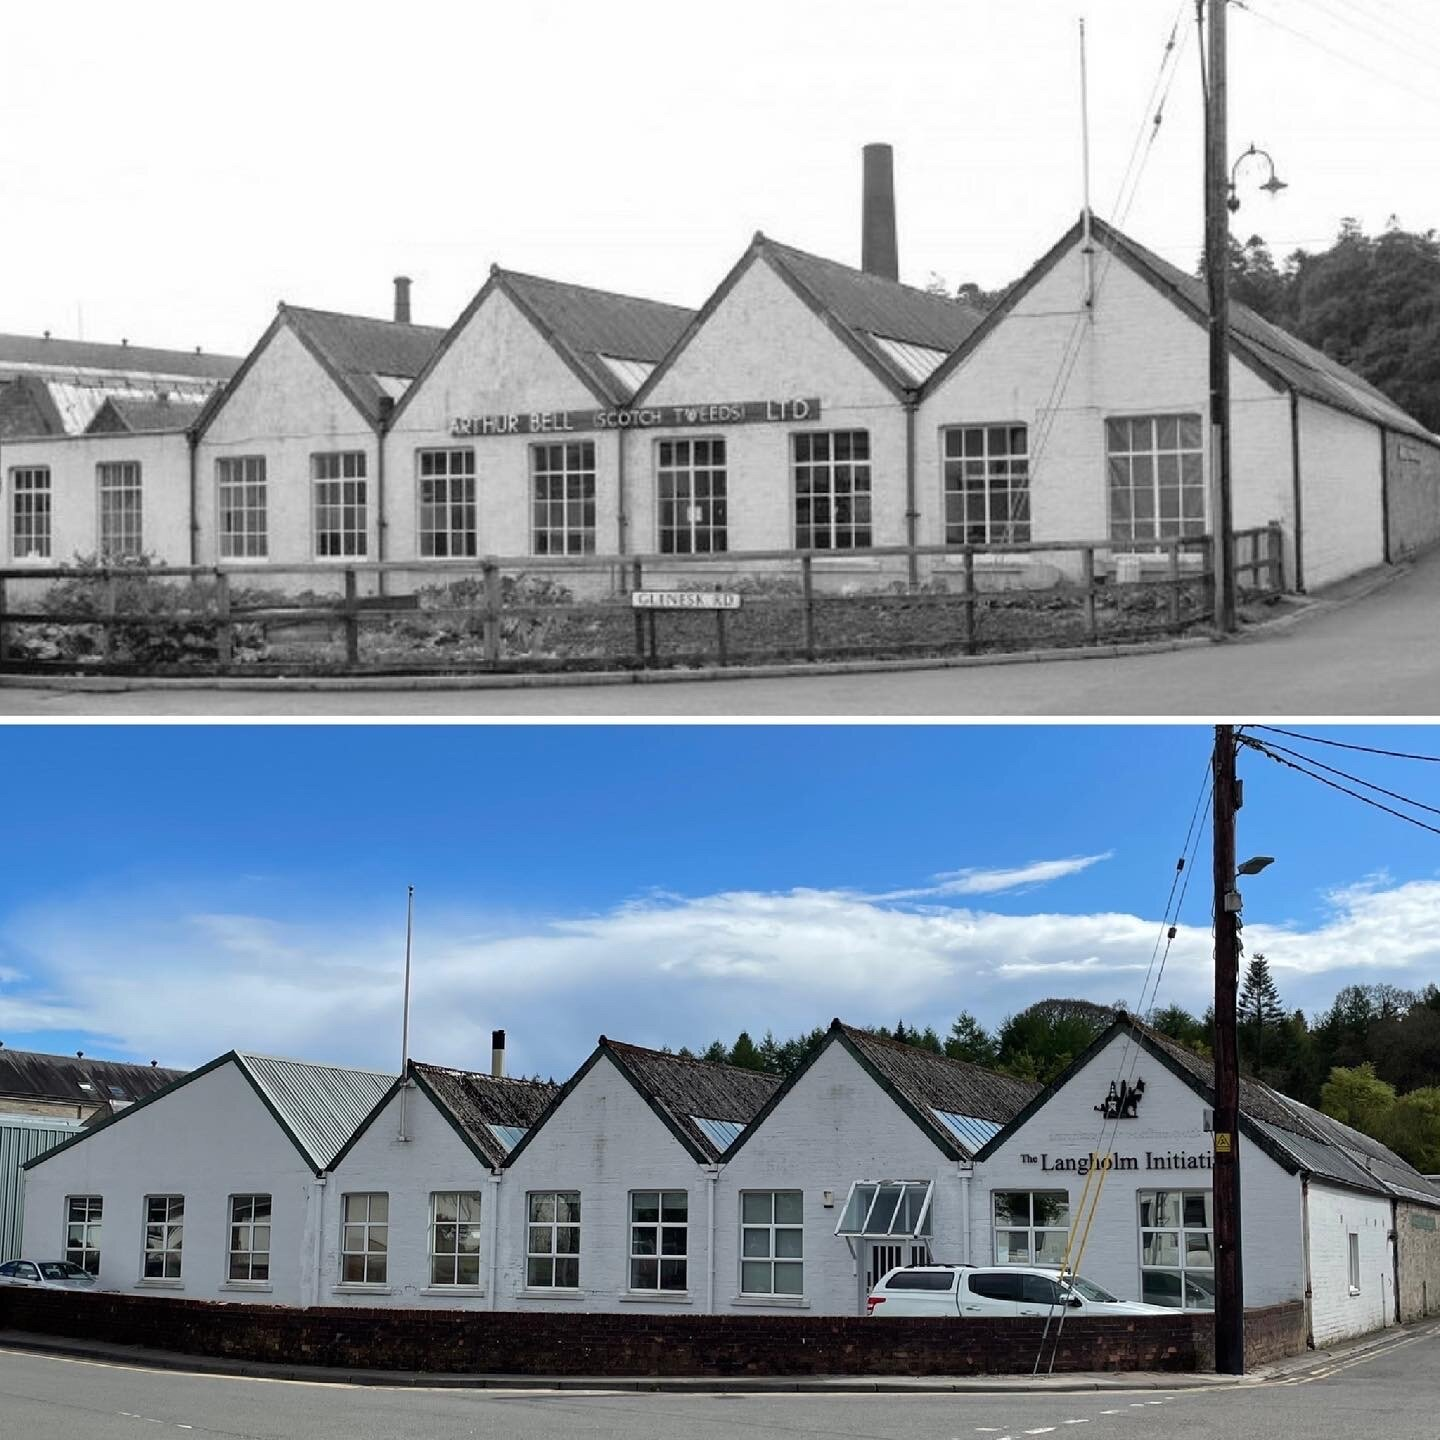 Arthur Bell's Mill in 1975 and now